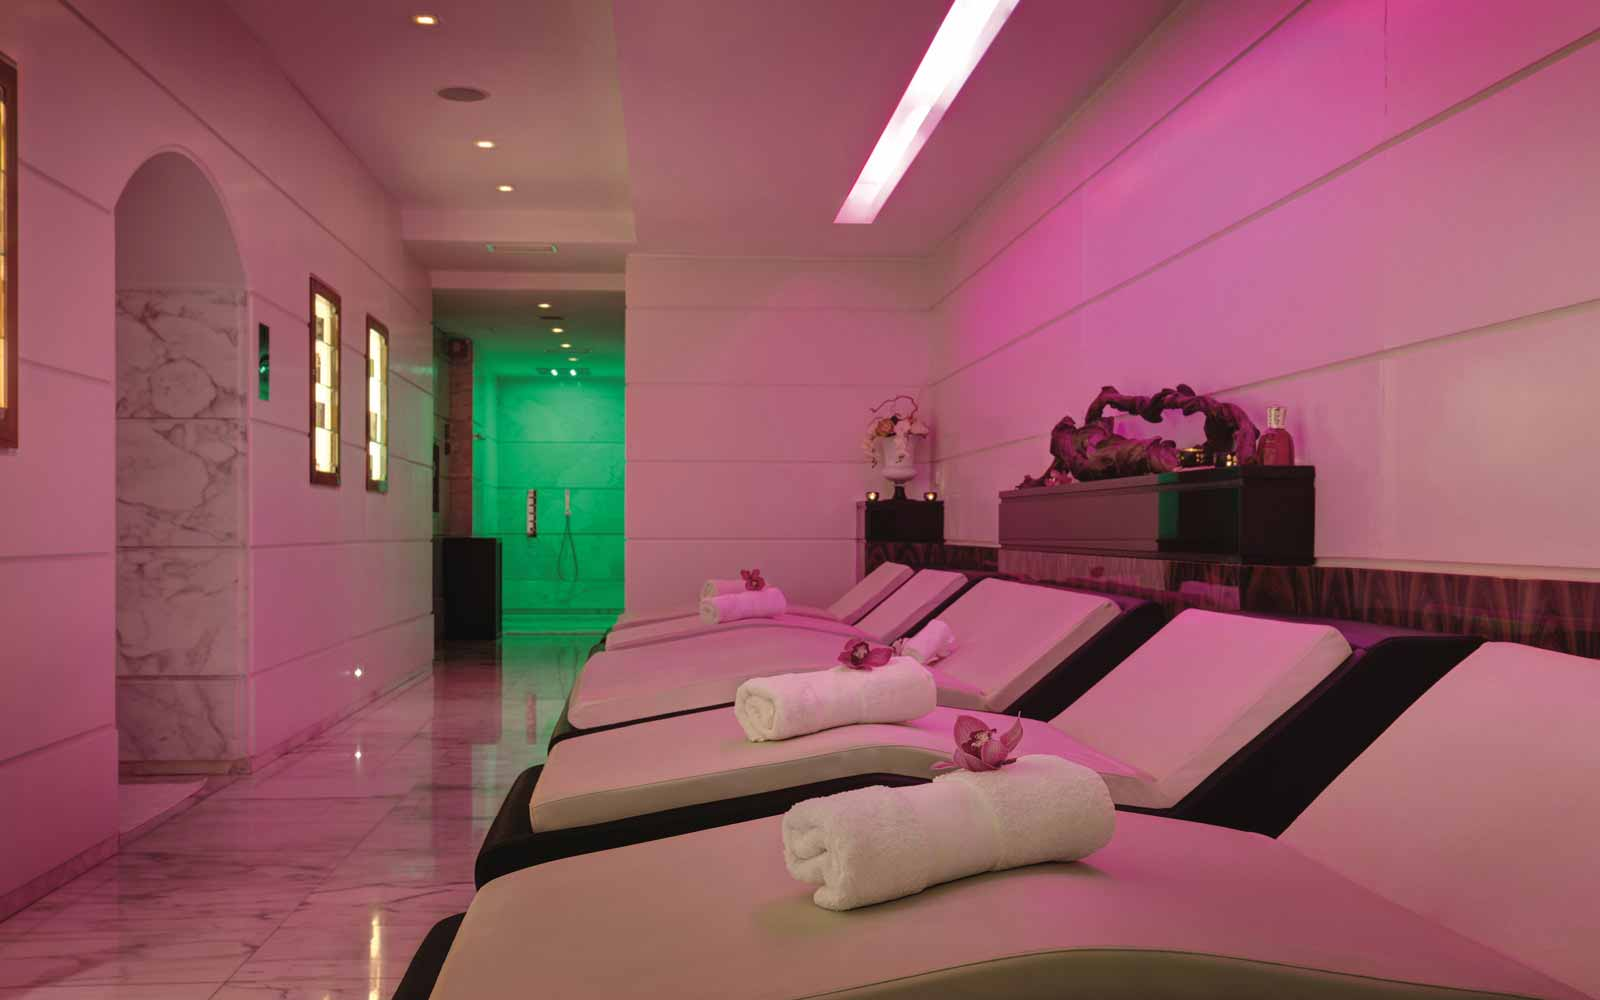 Aqva City Spa at the Grand Hotel Via Veneto